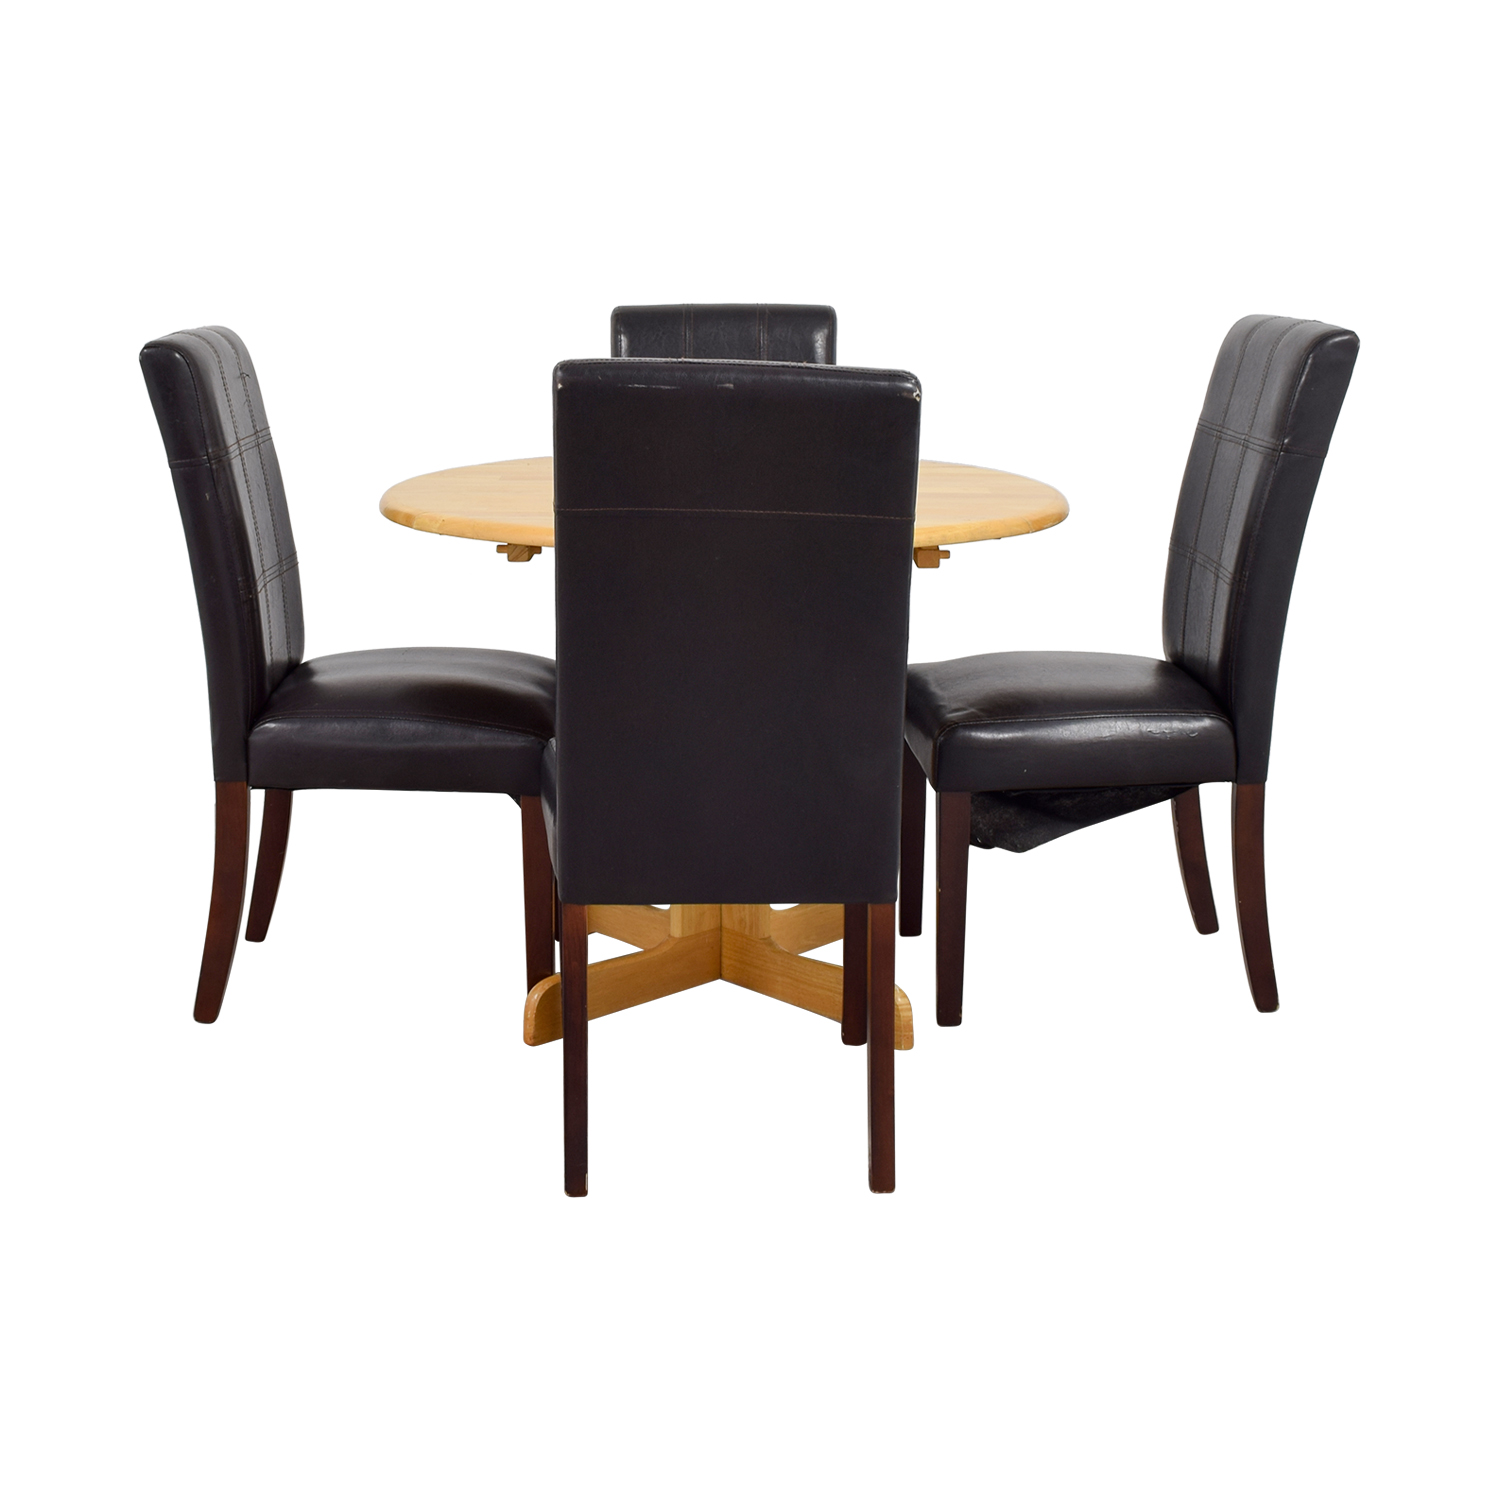 Raymour & Flannigan Rouch Butcher Block Table with Brown Leather Chairs / Tables